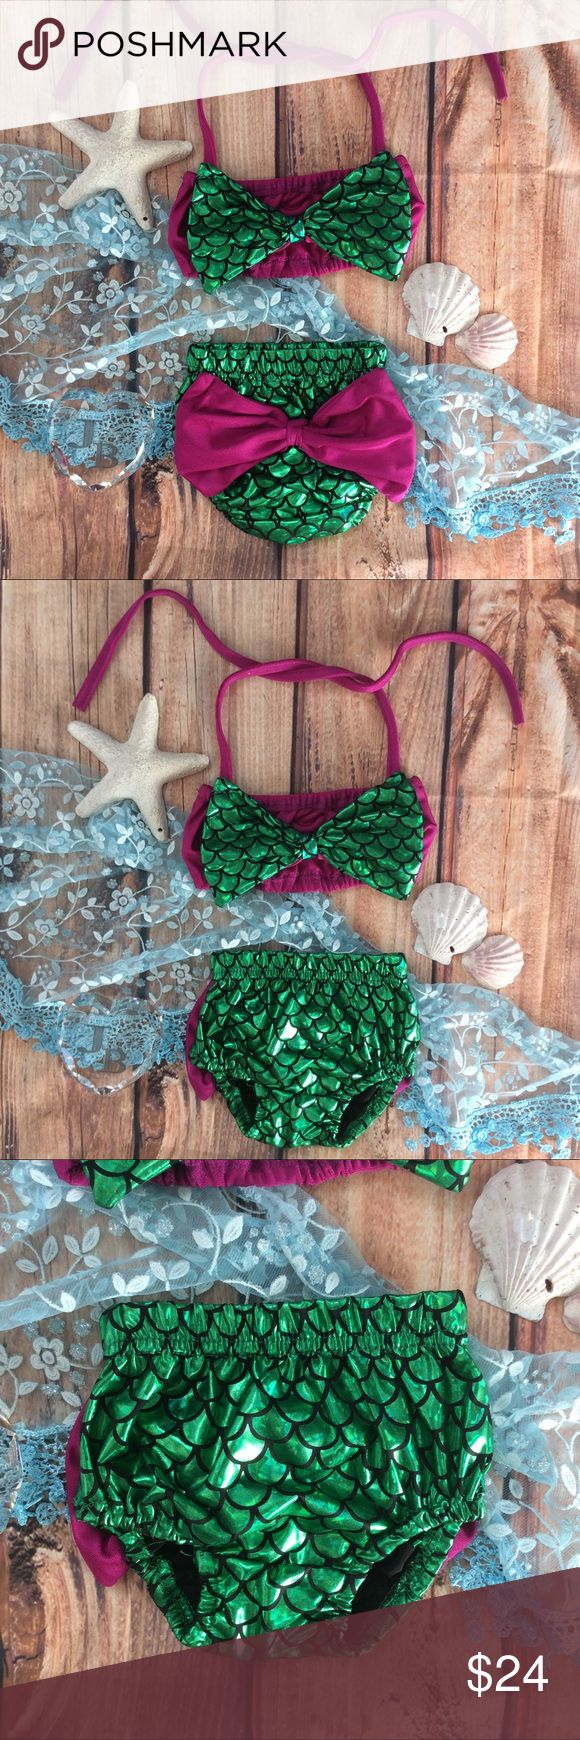 """Boutique Baby Girl 1st Mermaid Swm bikini Very cute baby's 1st Mermaid Swimsuit bikini design. Top has big green """"scale pattern"""" in front with fuchsia purple tube top style top with halter ties to adjust sizing from around the neck. Bloomers Tyler bikini bottoms made from matching green -""""mermaid scale"""" pattern. Big fuchsia big bow to backside. Very trendy Swimsuit this seasons! Swim Bikinis"""